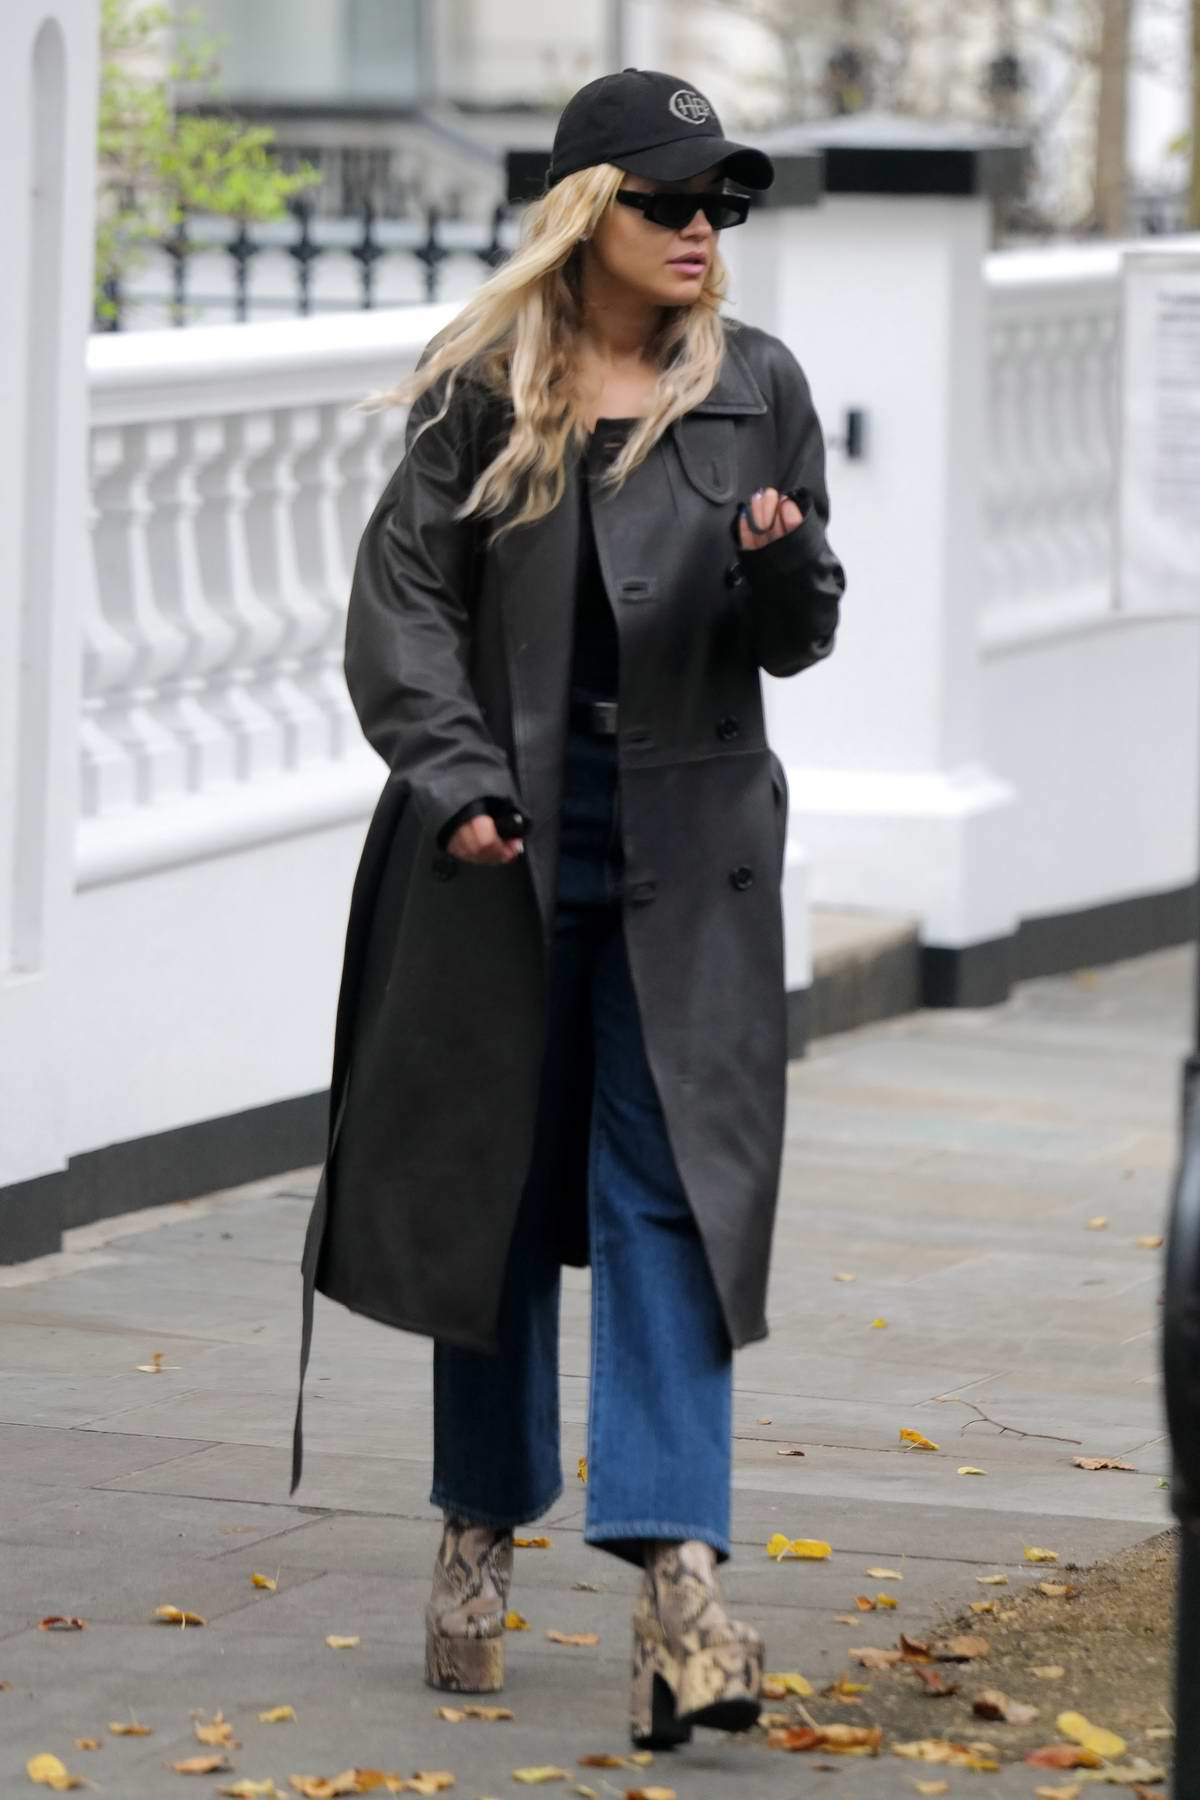 Rita Ora seen wearing a dark trench coat while heading out to a recording studio in London, UK